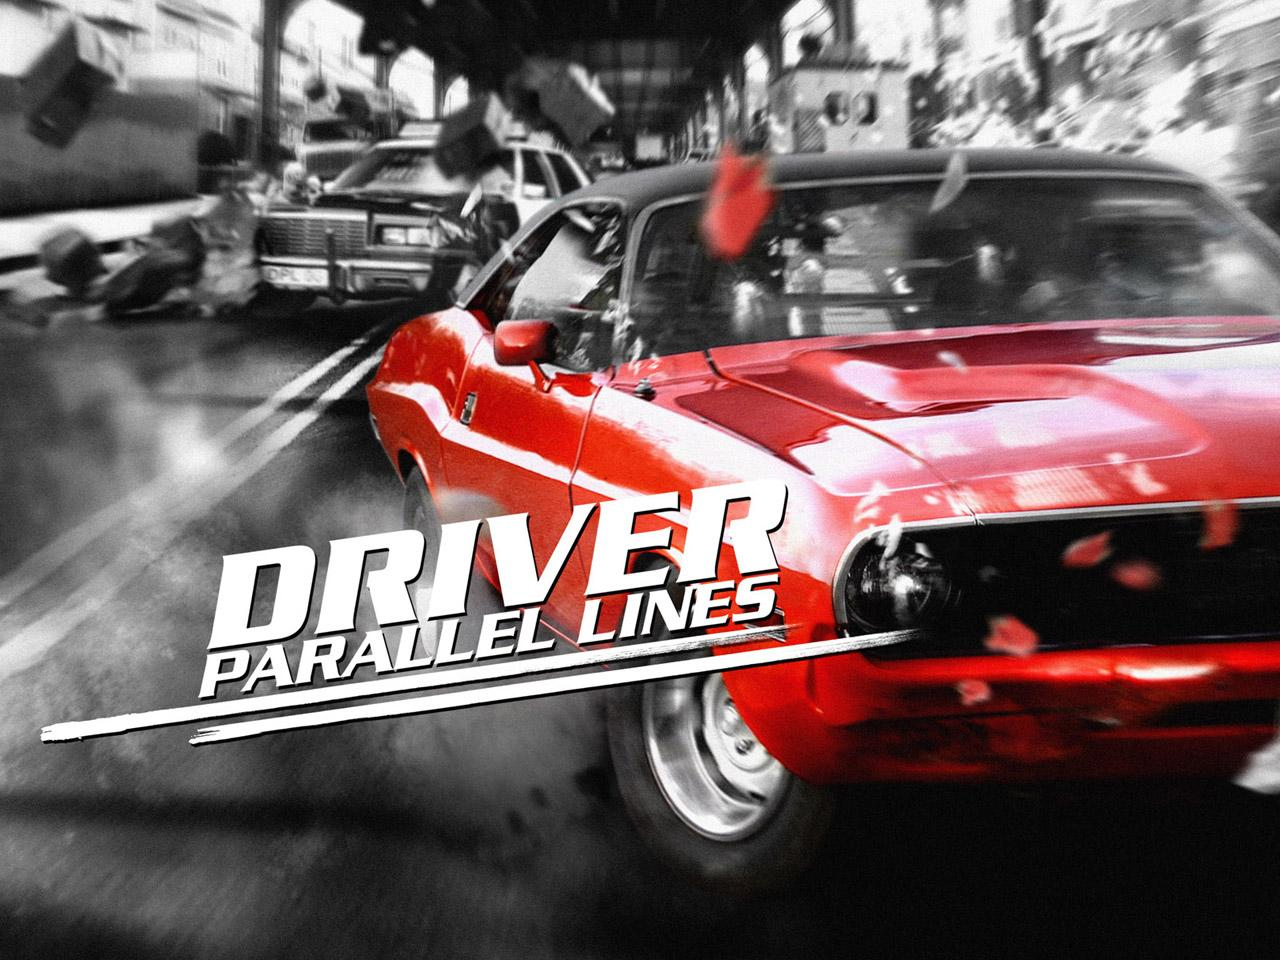 DriverParallelLines2_1280x1024.jpg - Driver: Parallel Lines